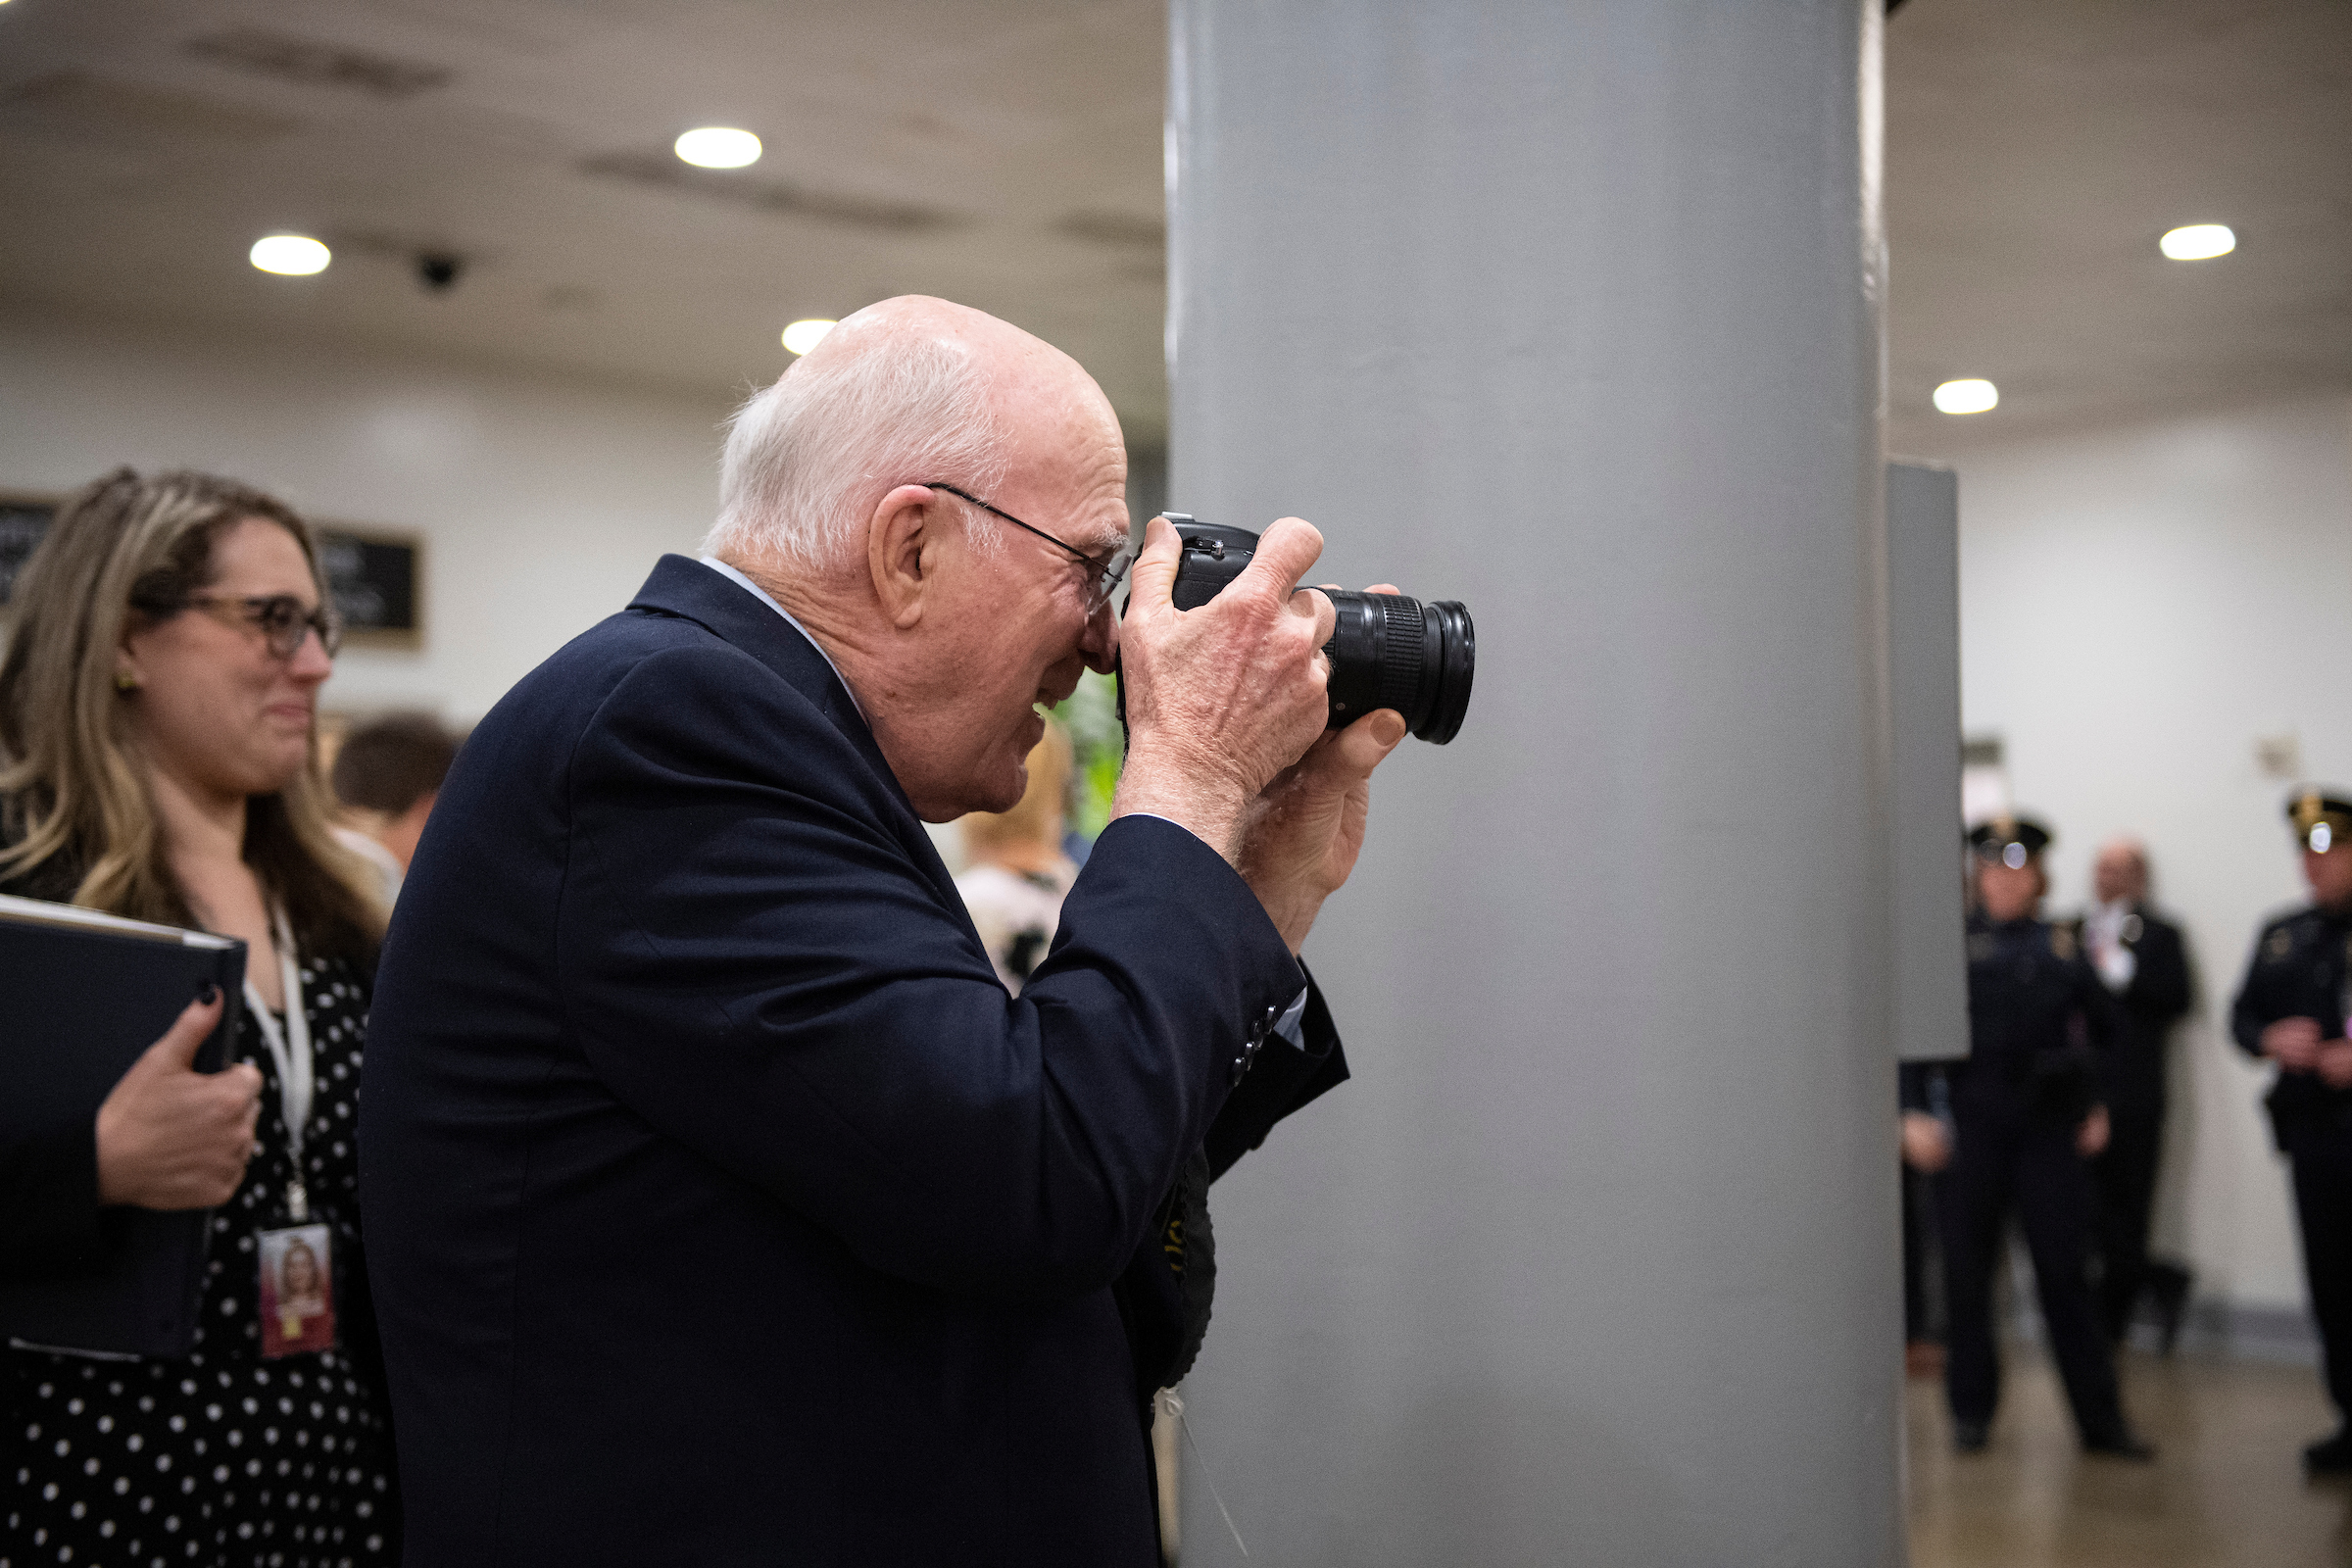 UNITED STATES - JANUARY 22: Sen. Patrick Leahy, D-Vt., takes a photograph of the reporters in the Senate Subway during a break in the Senate impeachment trial of President Donald Trump on Wednesday, Jan. 22, 2020. (Photo by Caroline Brehman/CQ Roll Call)